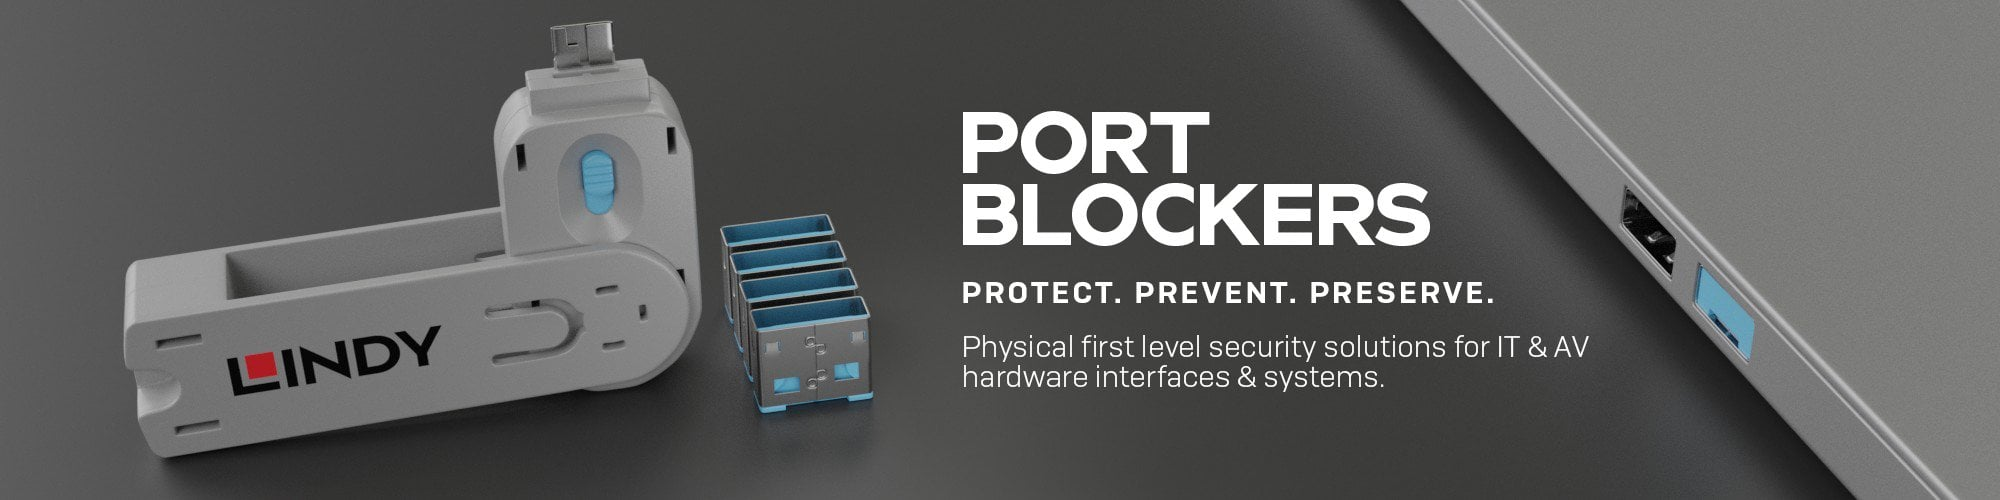 Port Blockers